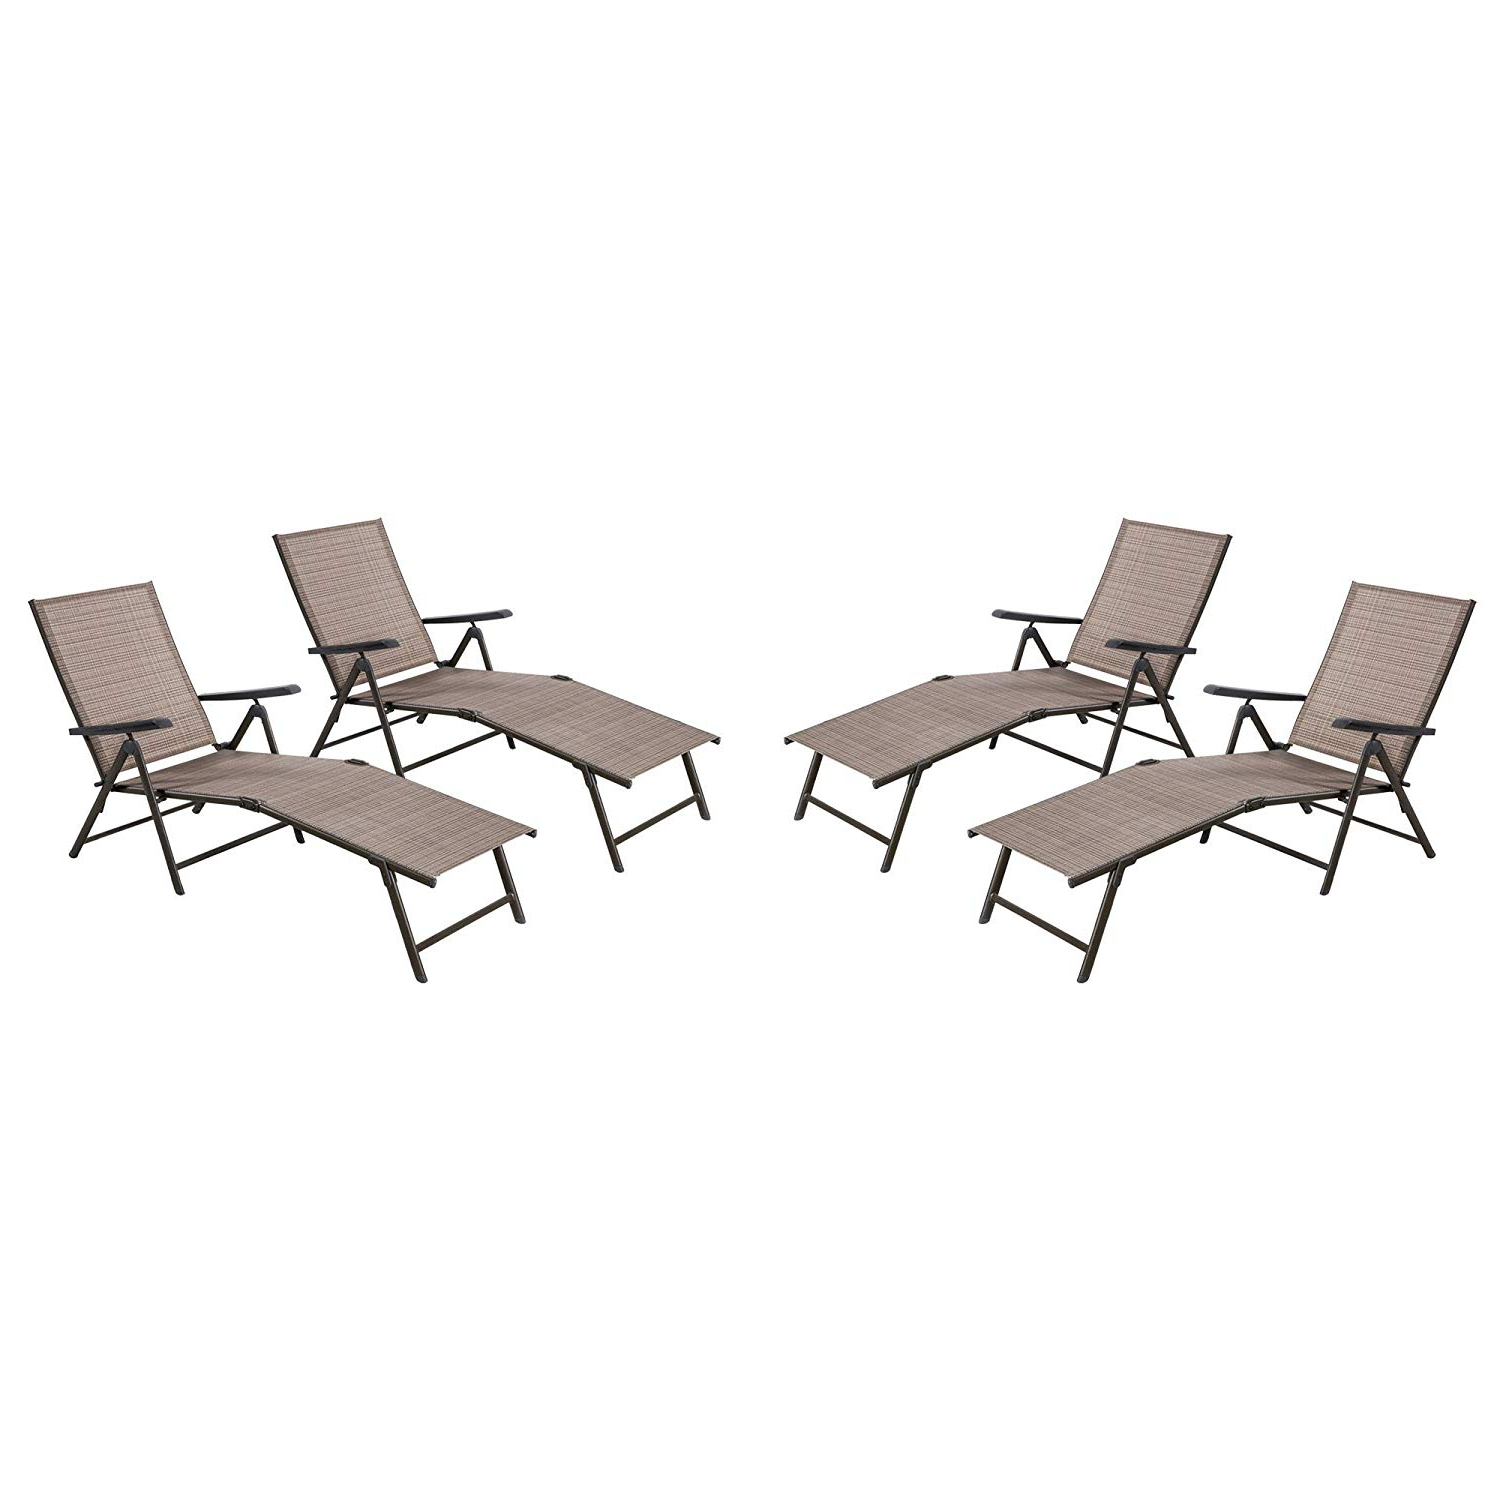 Most Recent Outdoor Yard Pool Recliner Folding Lounge Table Chairs Regarding Cheap Pool Chaise Loungers, Find Pool Chaise Loungers Deals (View 16 of 25)